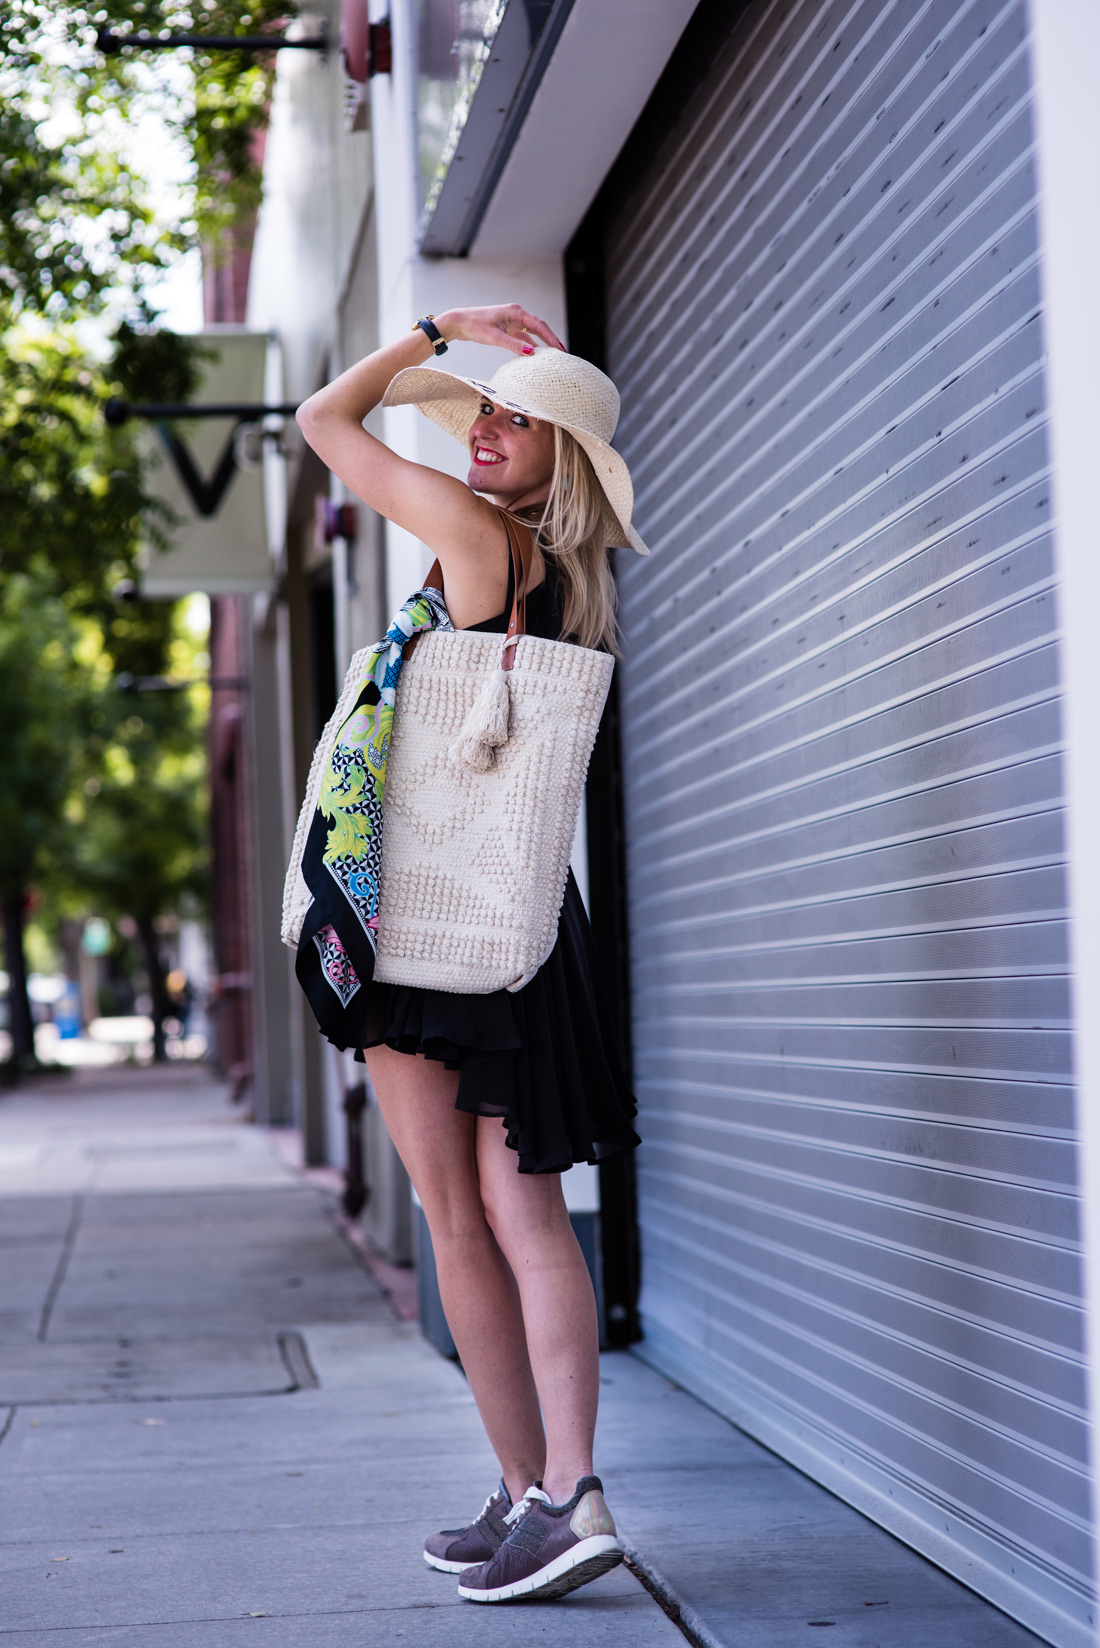 Bag-at-you---Fashion-blog---Abercrombie-bag---Summer-look